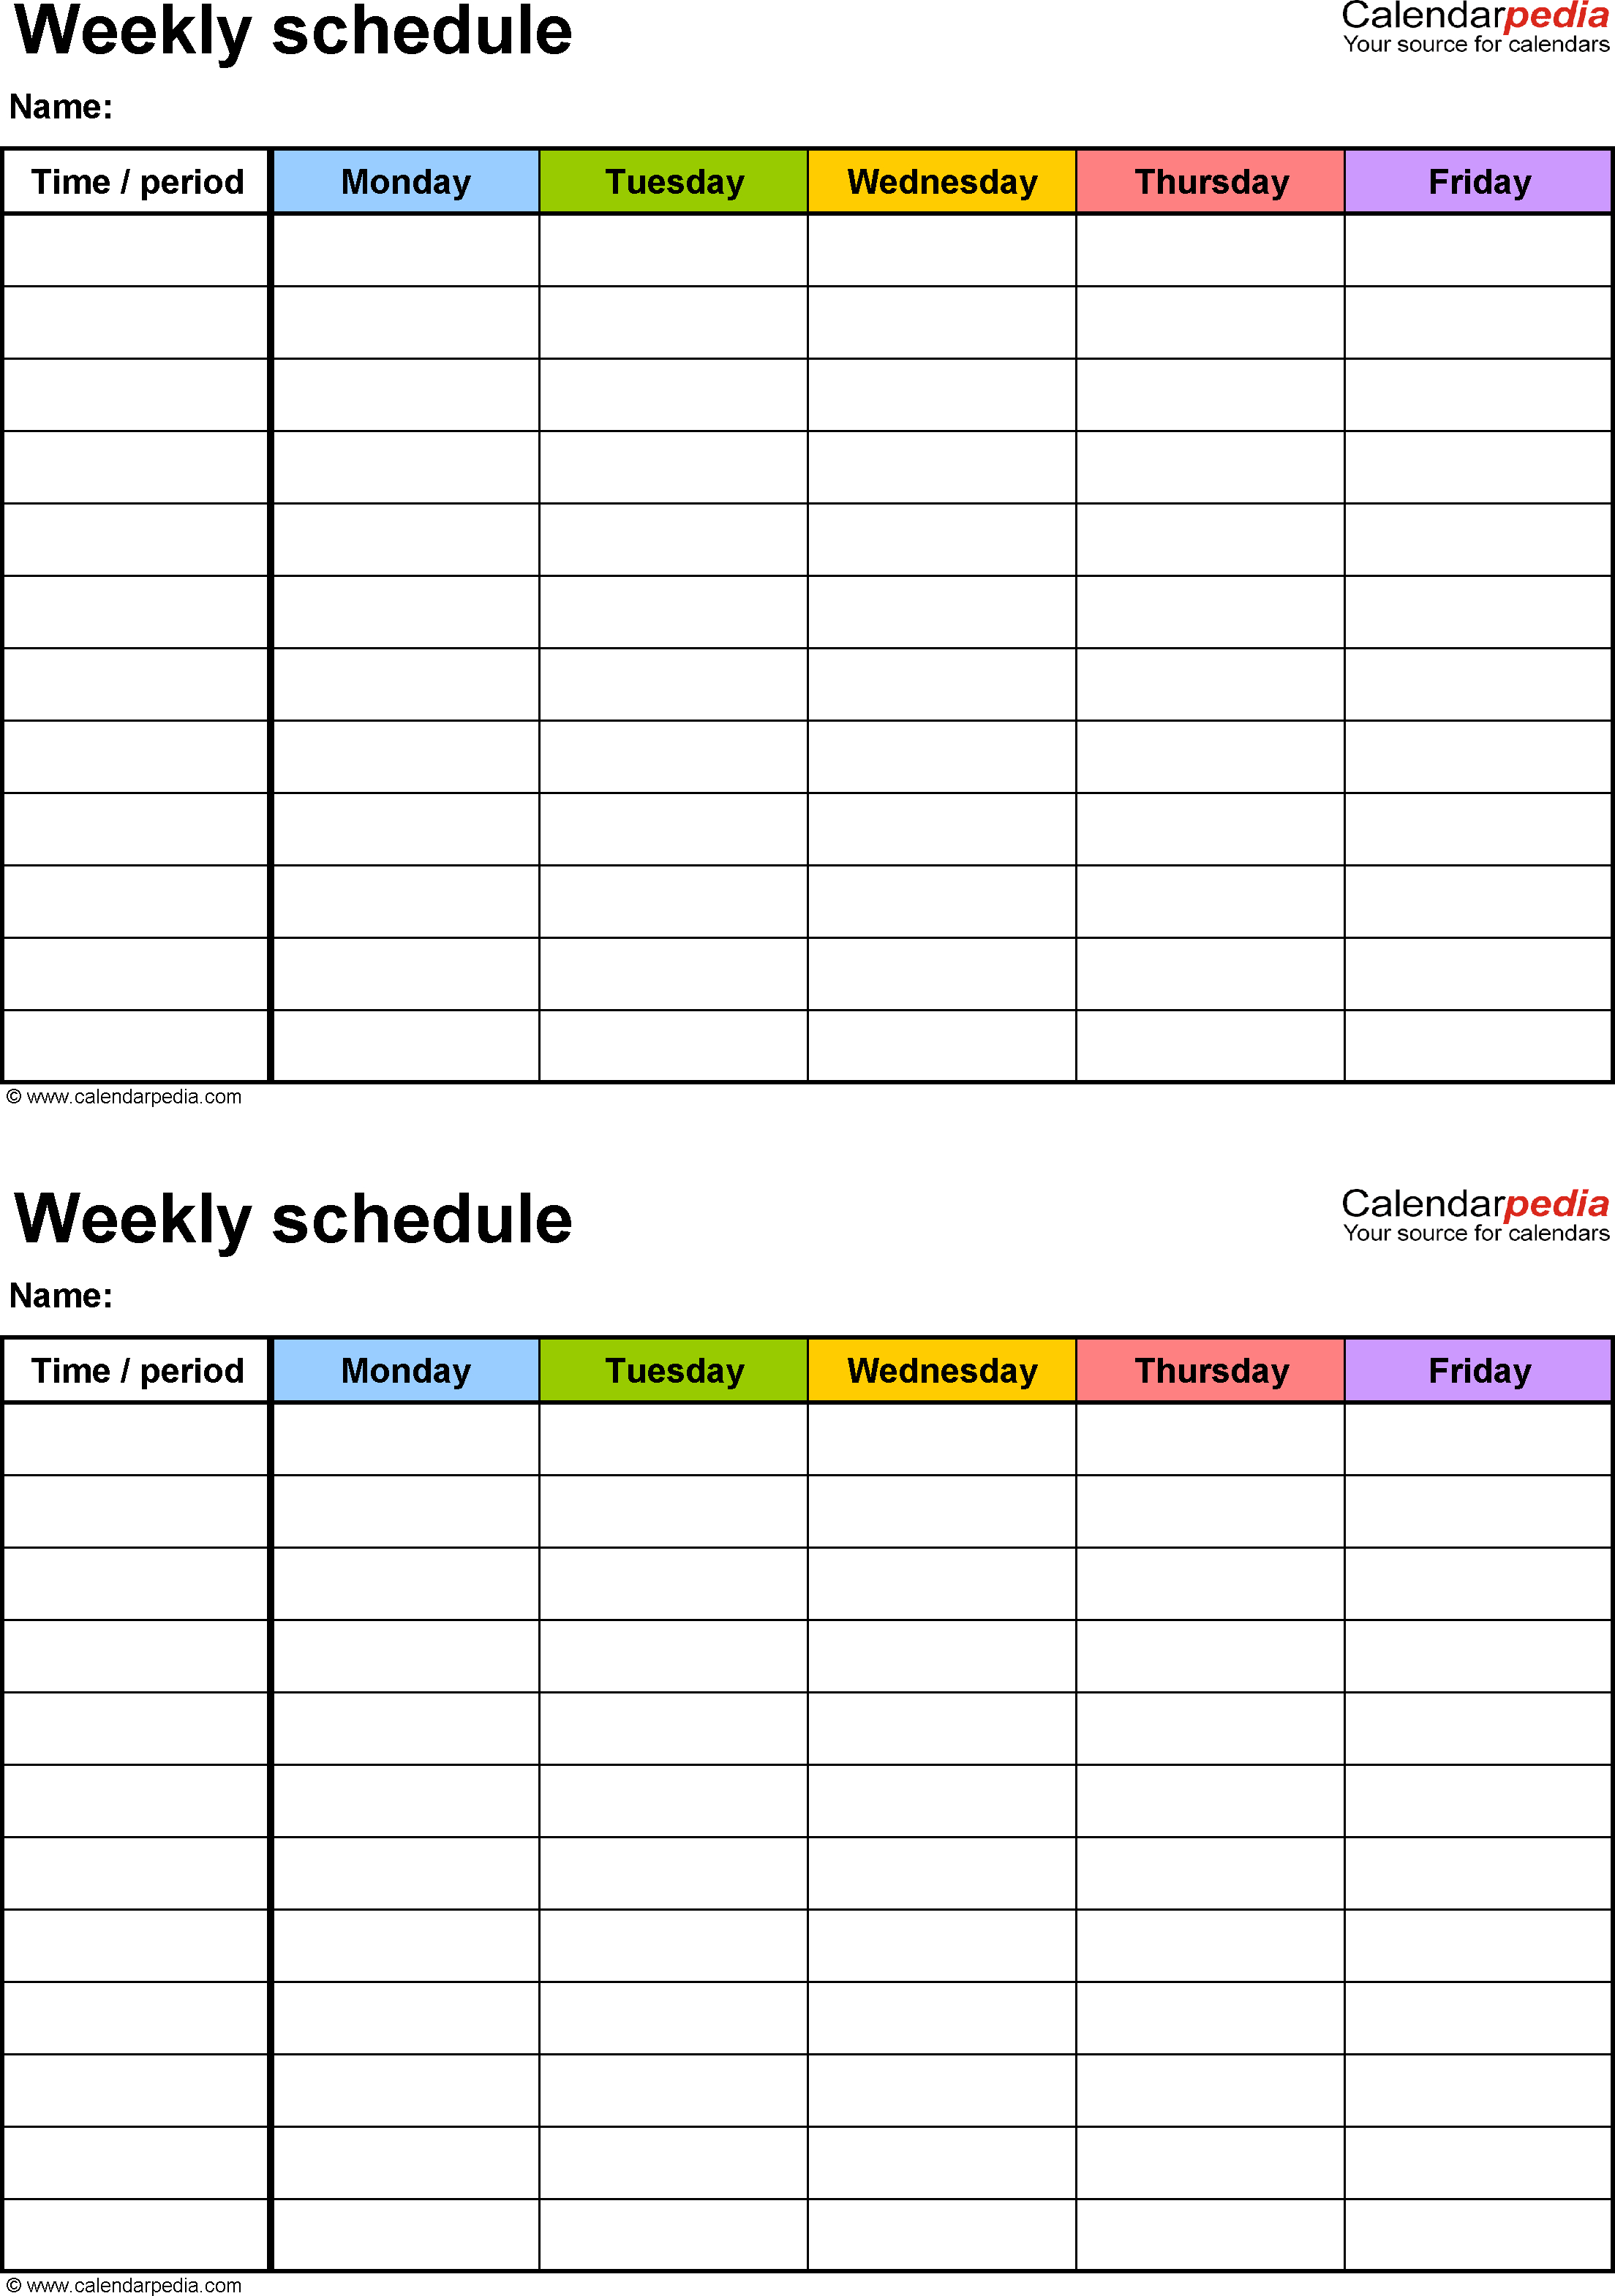 Free Weekly Schedule Templates For Word - 18 Templates inside 7 Day Week Blank Calendar